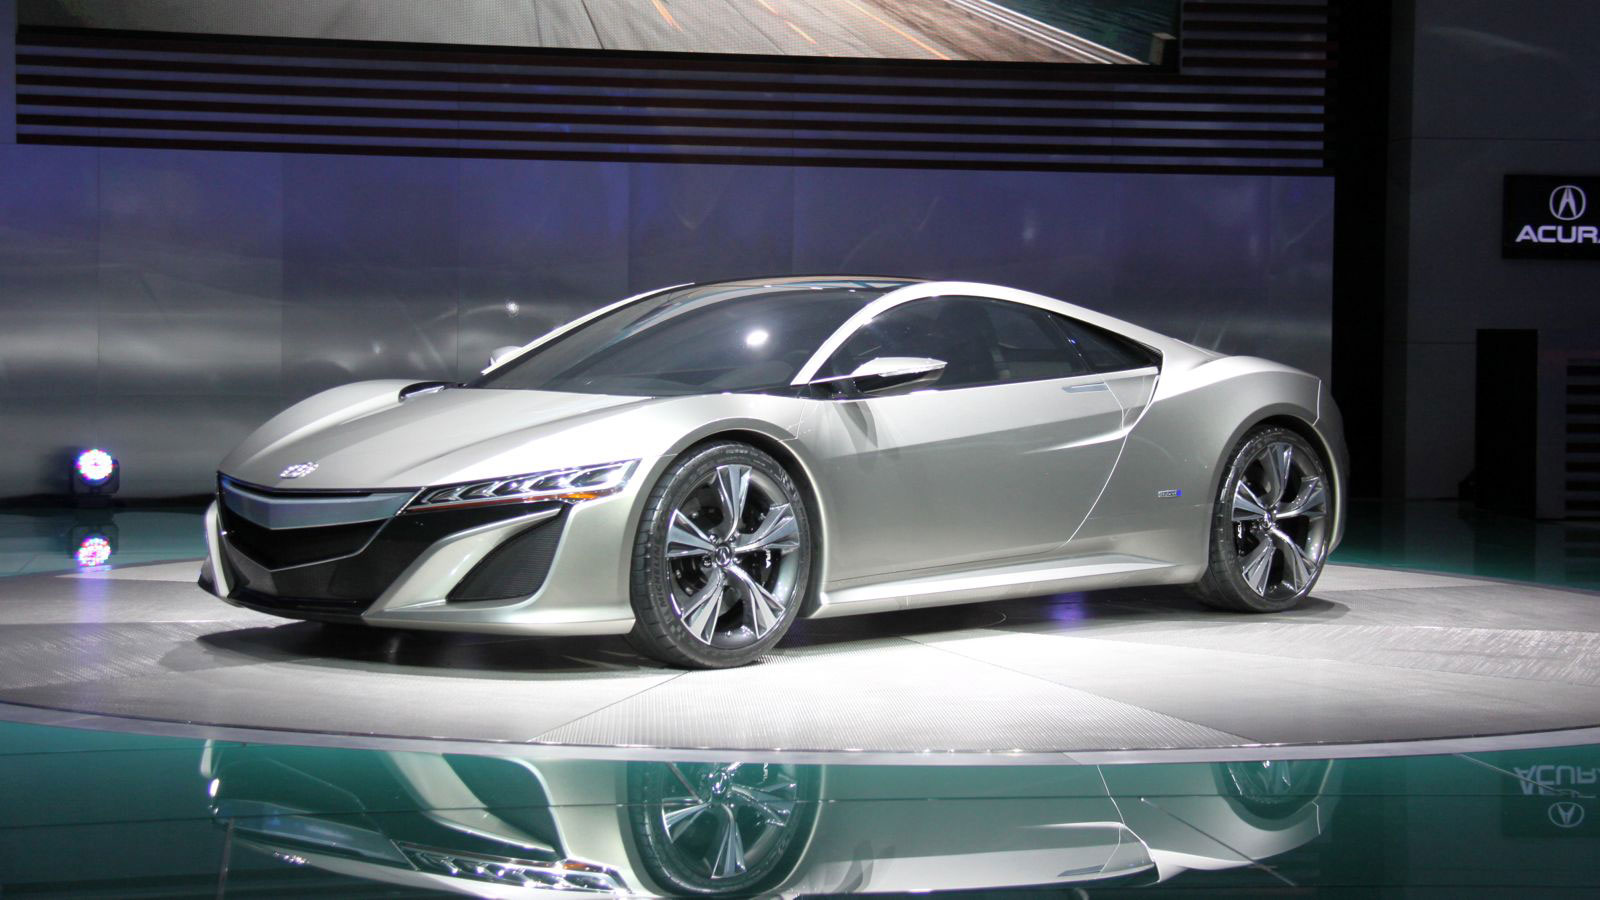 Acura nsx pictures information and specs auto database acura nsx pics 12 voltagebd Gallery